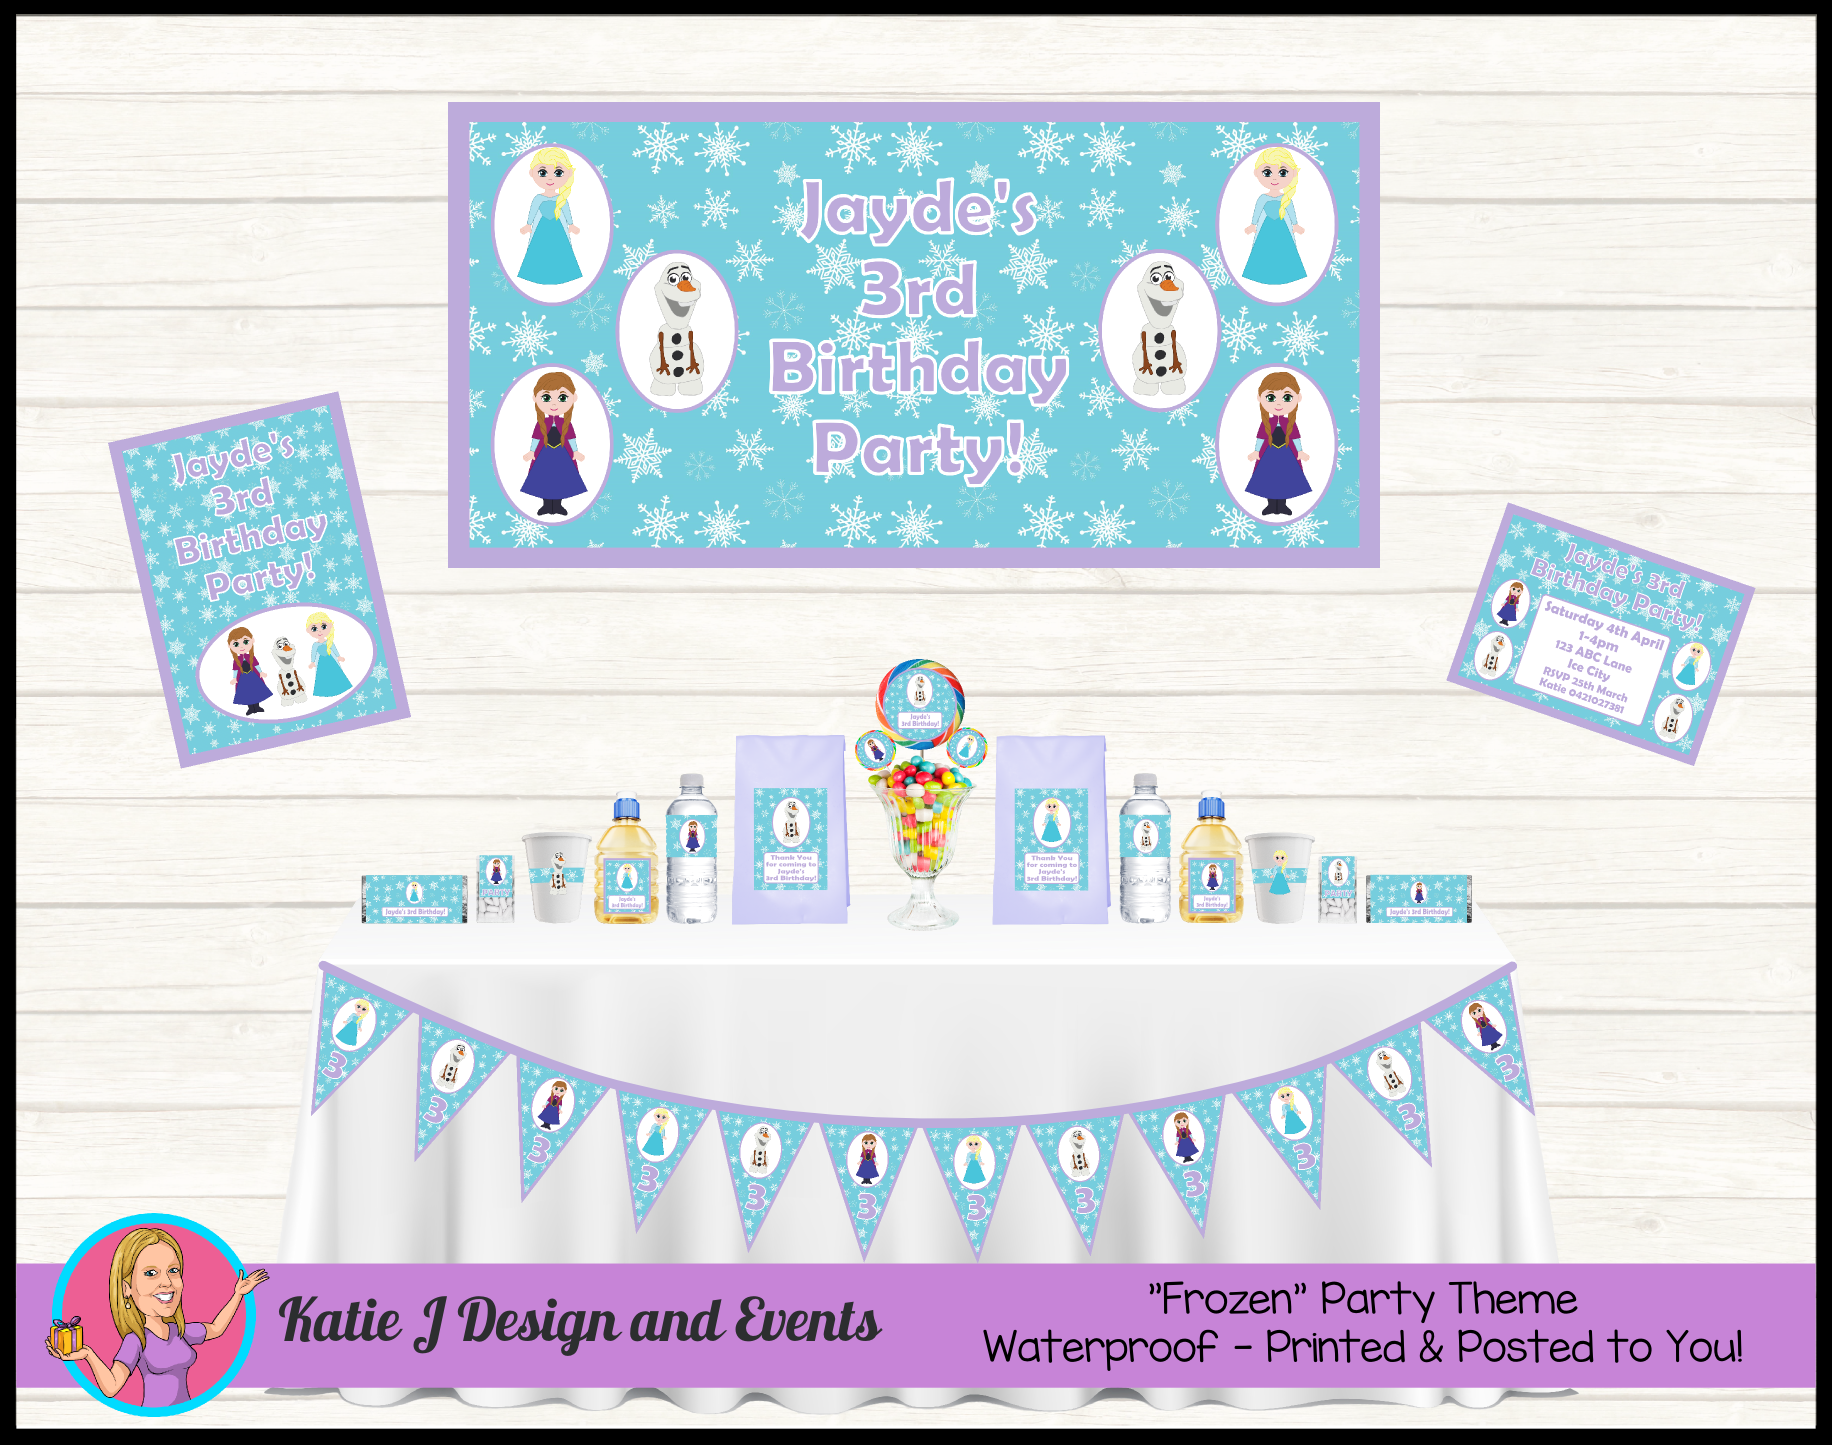 Frozen Party Personalised Birthday Decorations Supplies Packs Shop Online Australia Banners Bunting Wall Display Cupcake Also